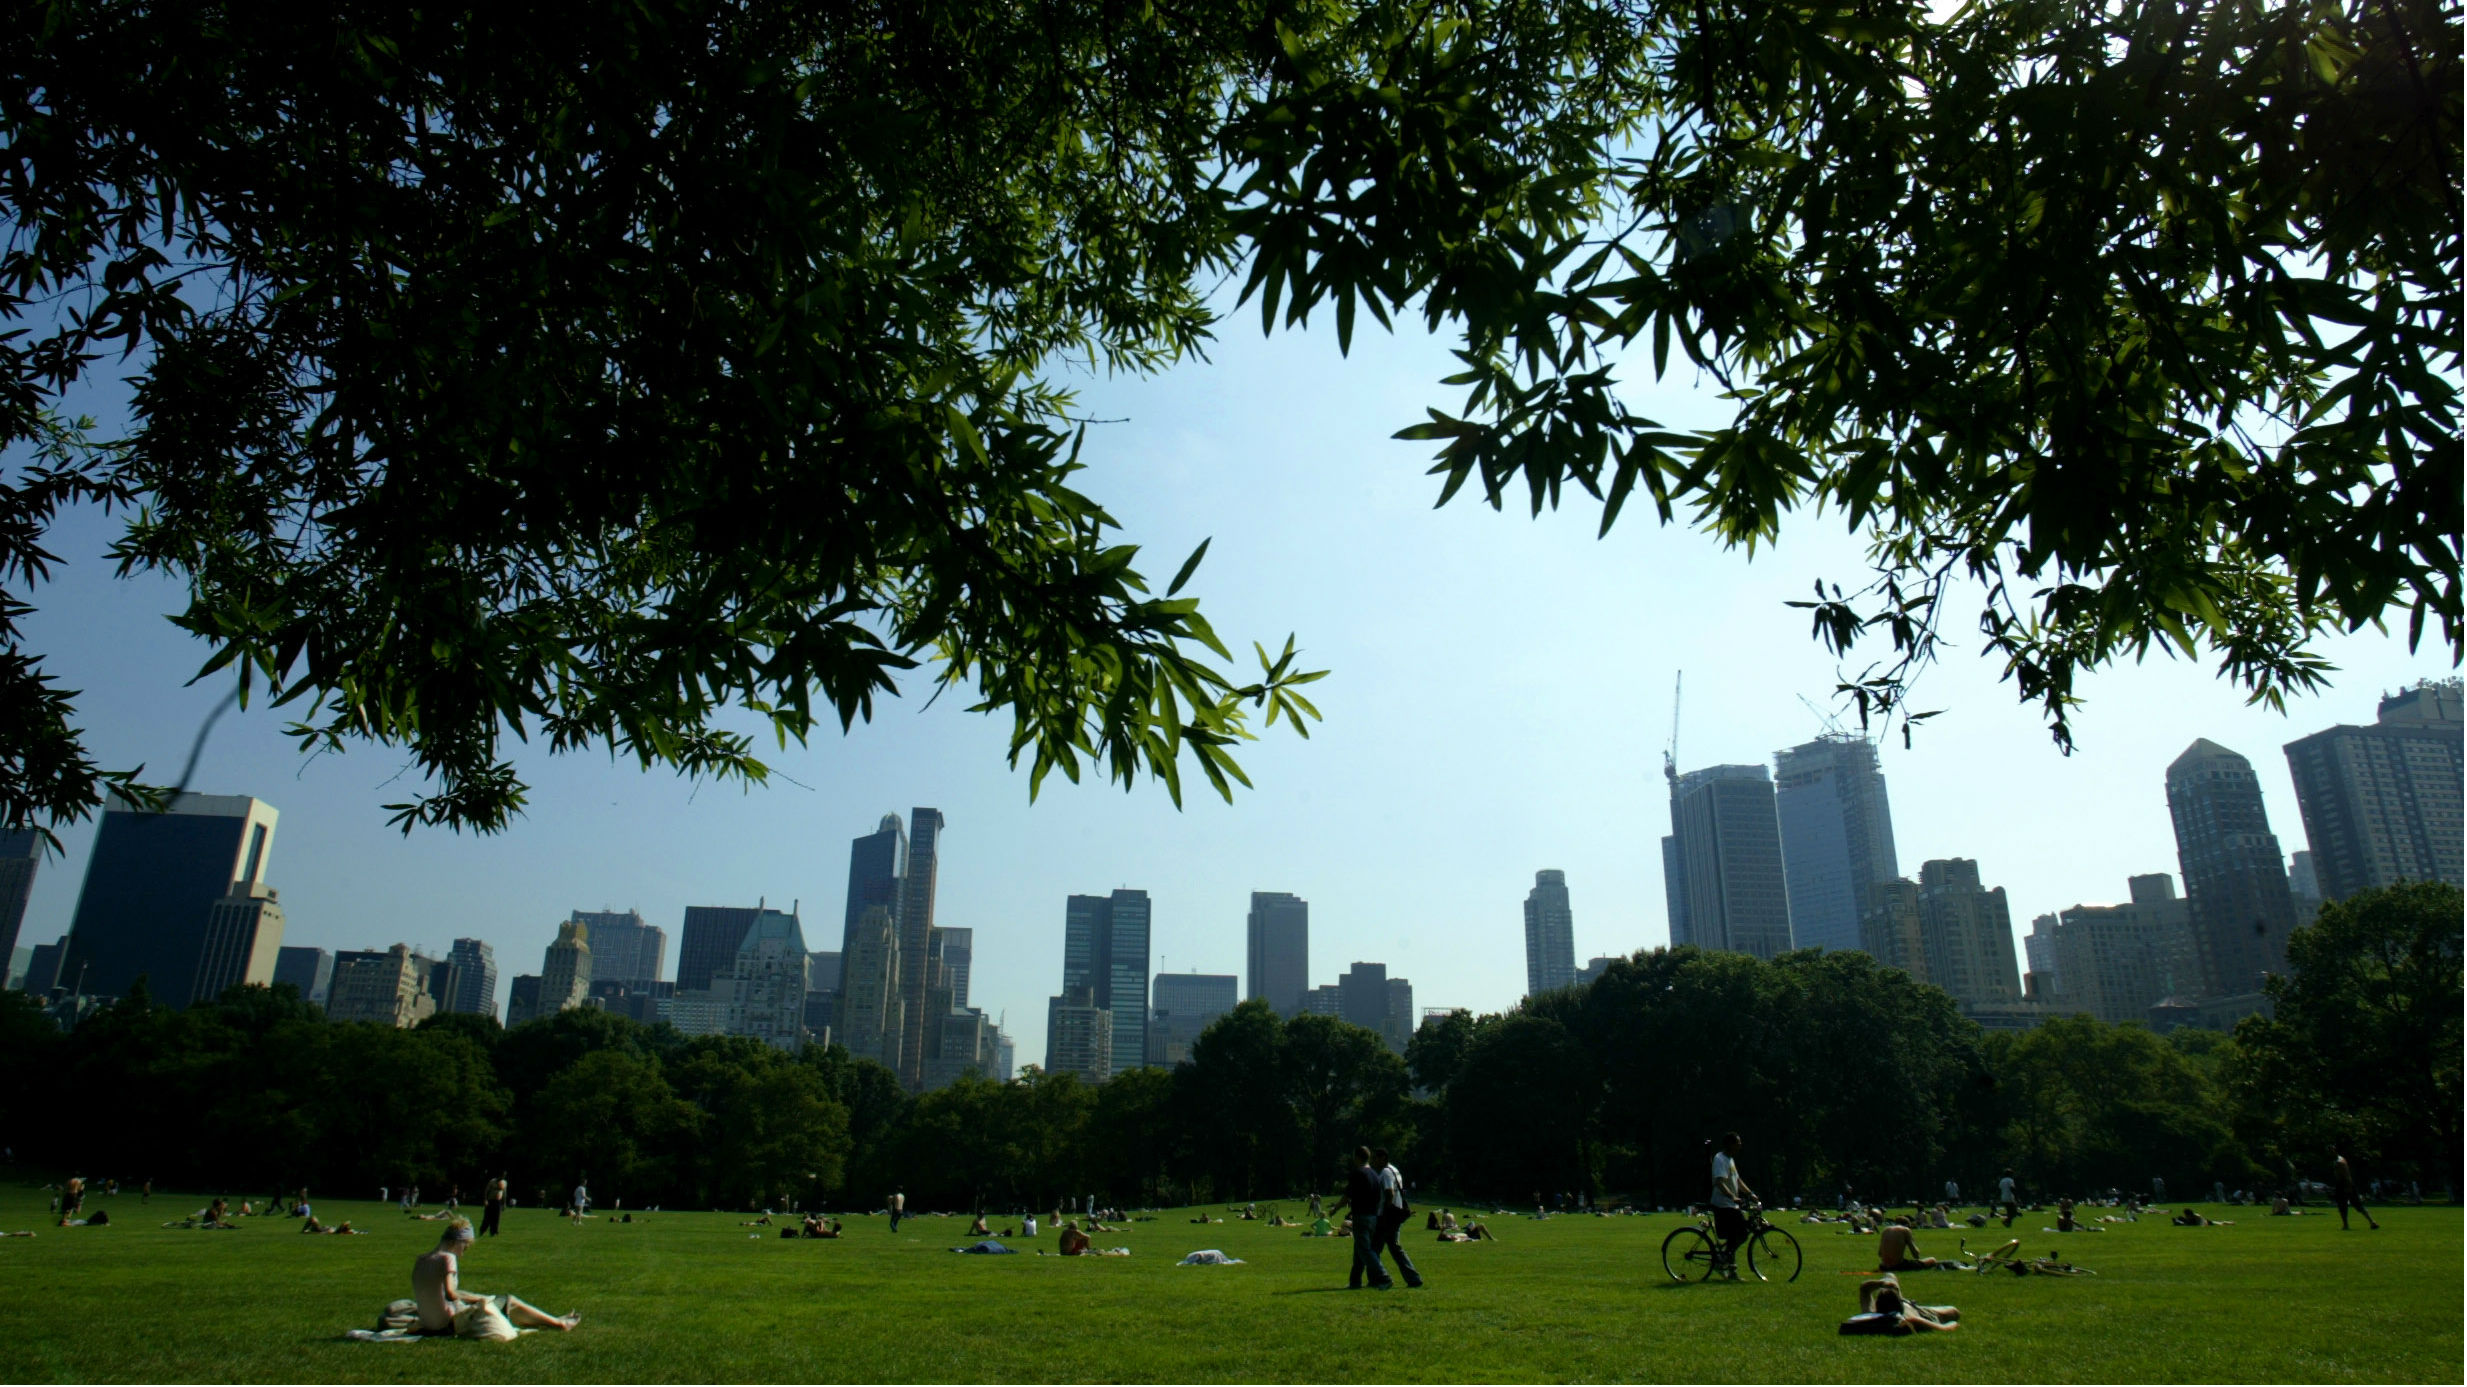 """Park goers relax on the Sheep's Meadow in New York's famed Central Park, July 15, 2003. Central Park, arguably America's most famous public green space, turns 150 years old this summer. For New Yorkers, the park, in the middle of Manhattan is an urban oasis. It's 843 acres, with some 26,000 trees, 58 miles of pathways, 9,000 benches, many fields, woods, waterways and nature sancturary's are the master work of what was called """"The Greenswald Plan"""" designed by London-trained architect Calvert Vaux and Frederick Law Olmsted, who later became the most prominent landscape architecht in America."""